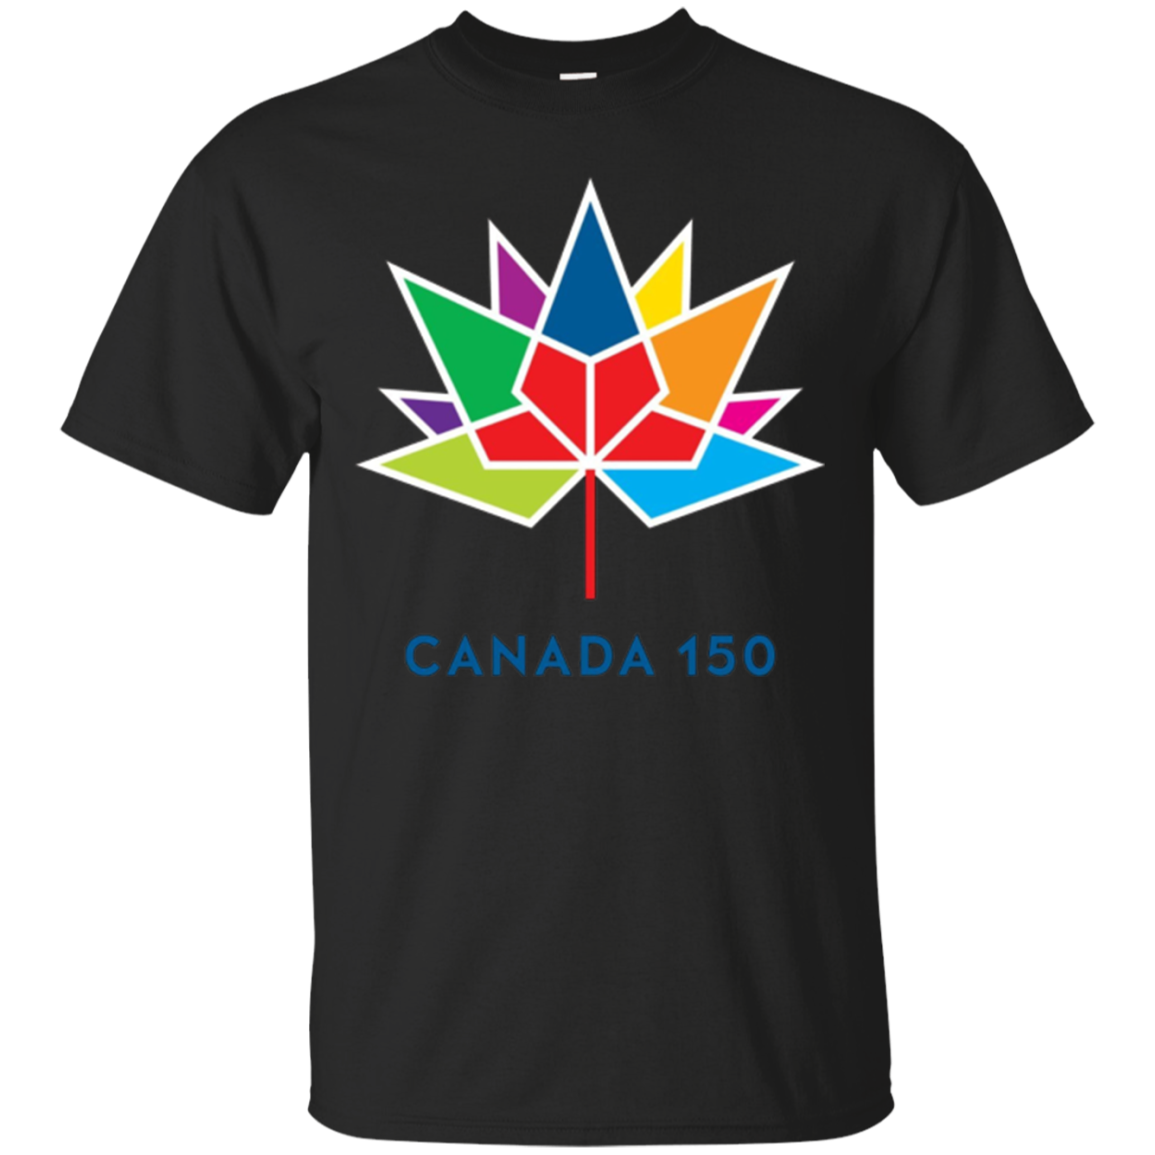 Canada 150 Logo T-Shirt Official License by Heritage Canada